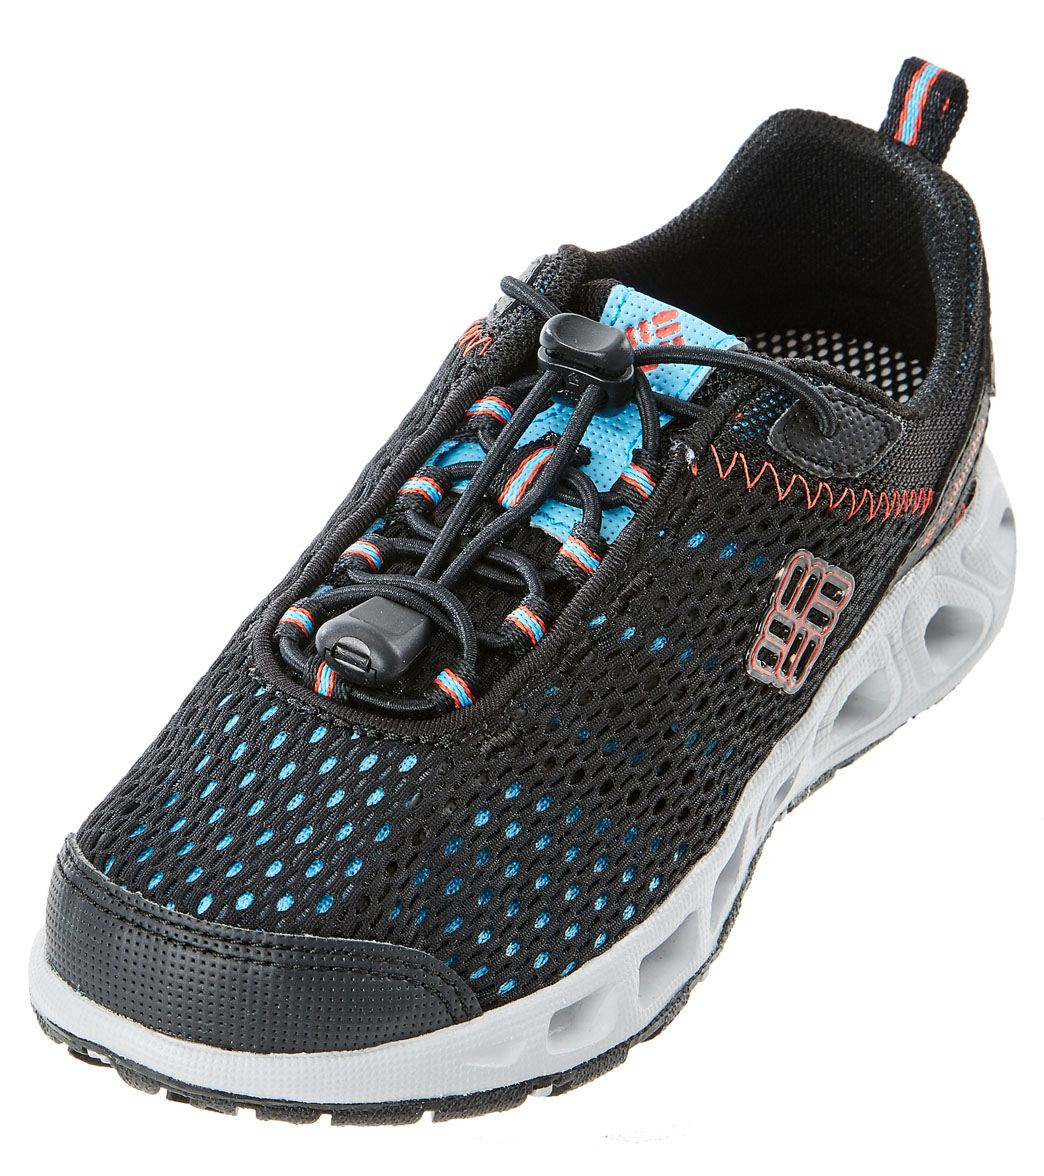 9cd717416ad Columbia Youth Drainmaker III Water Shoe at SwimOutlet.com - Free Shipping